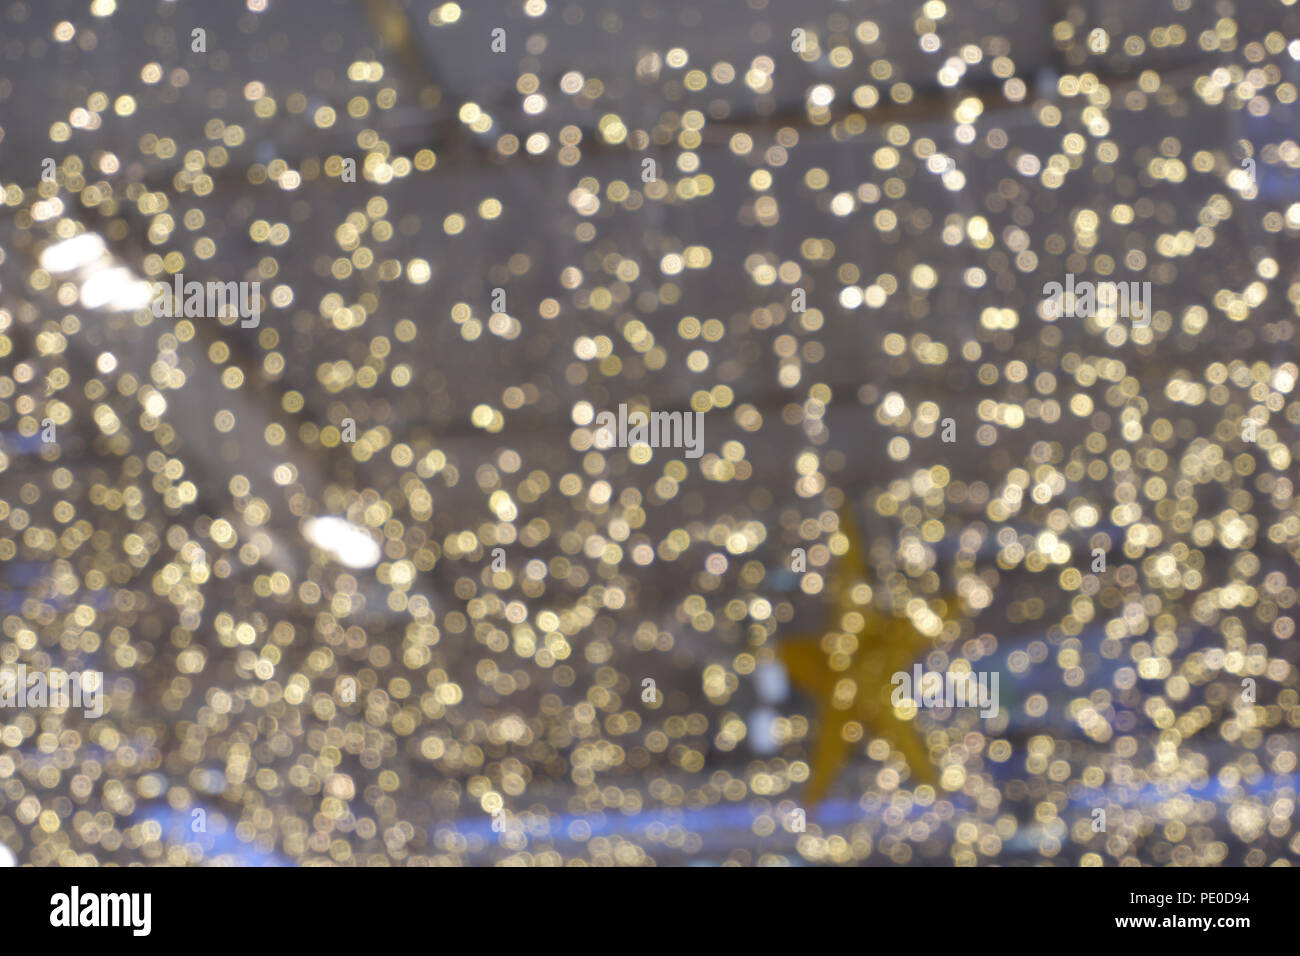 Bokeh Wallpapers High Quality: Abstract Yellow Bokeh Circles For Christmas Background